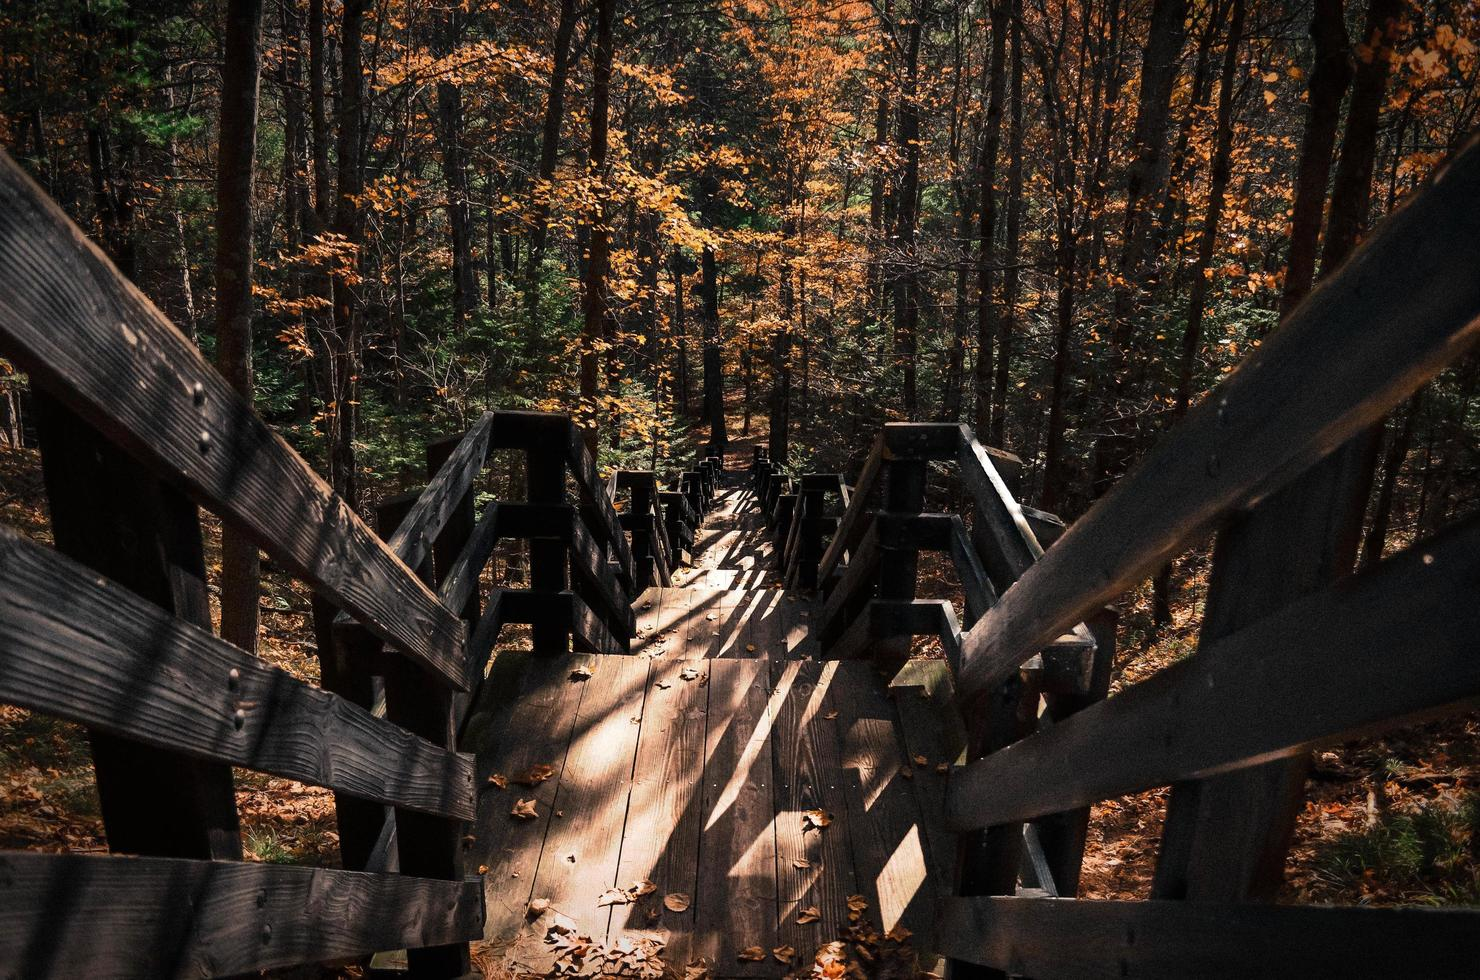 Wooden stairs in the forest  photo